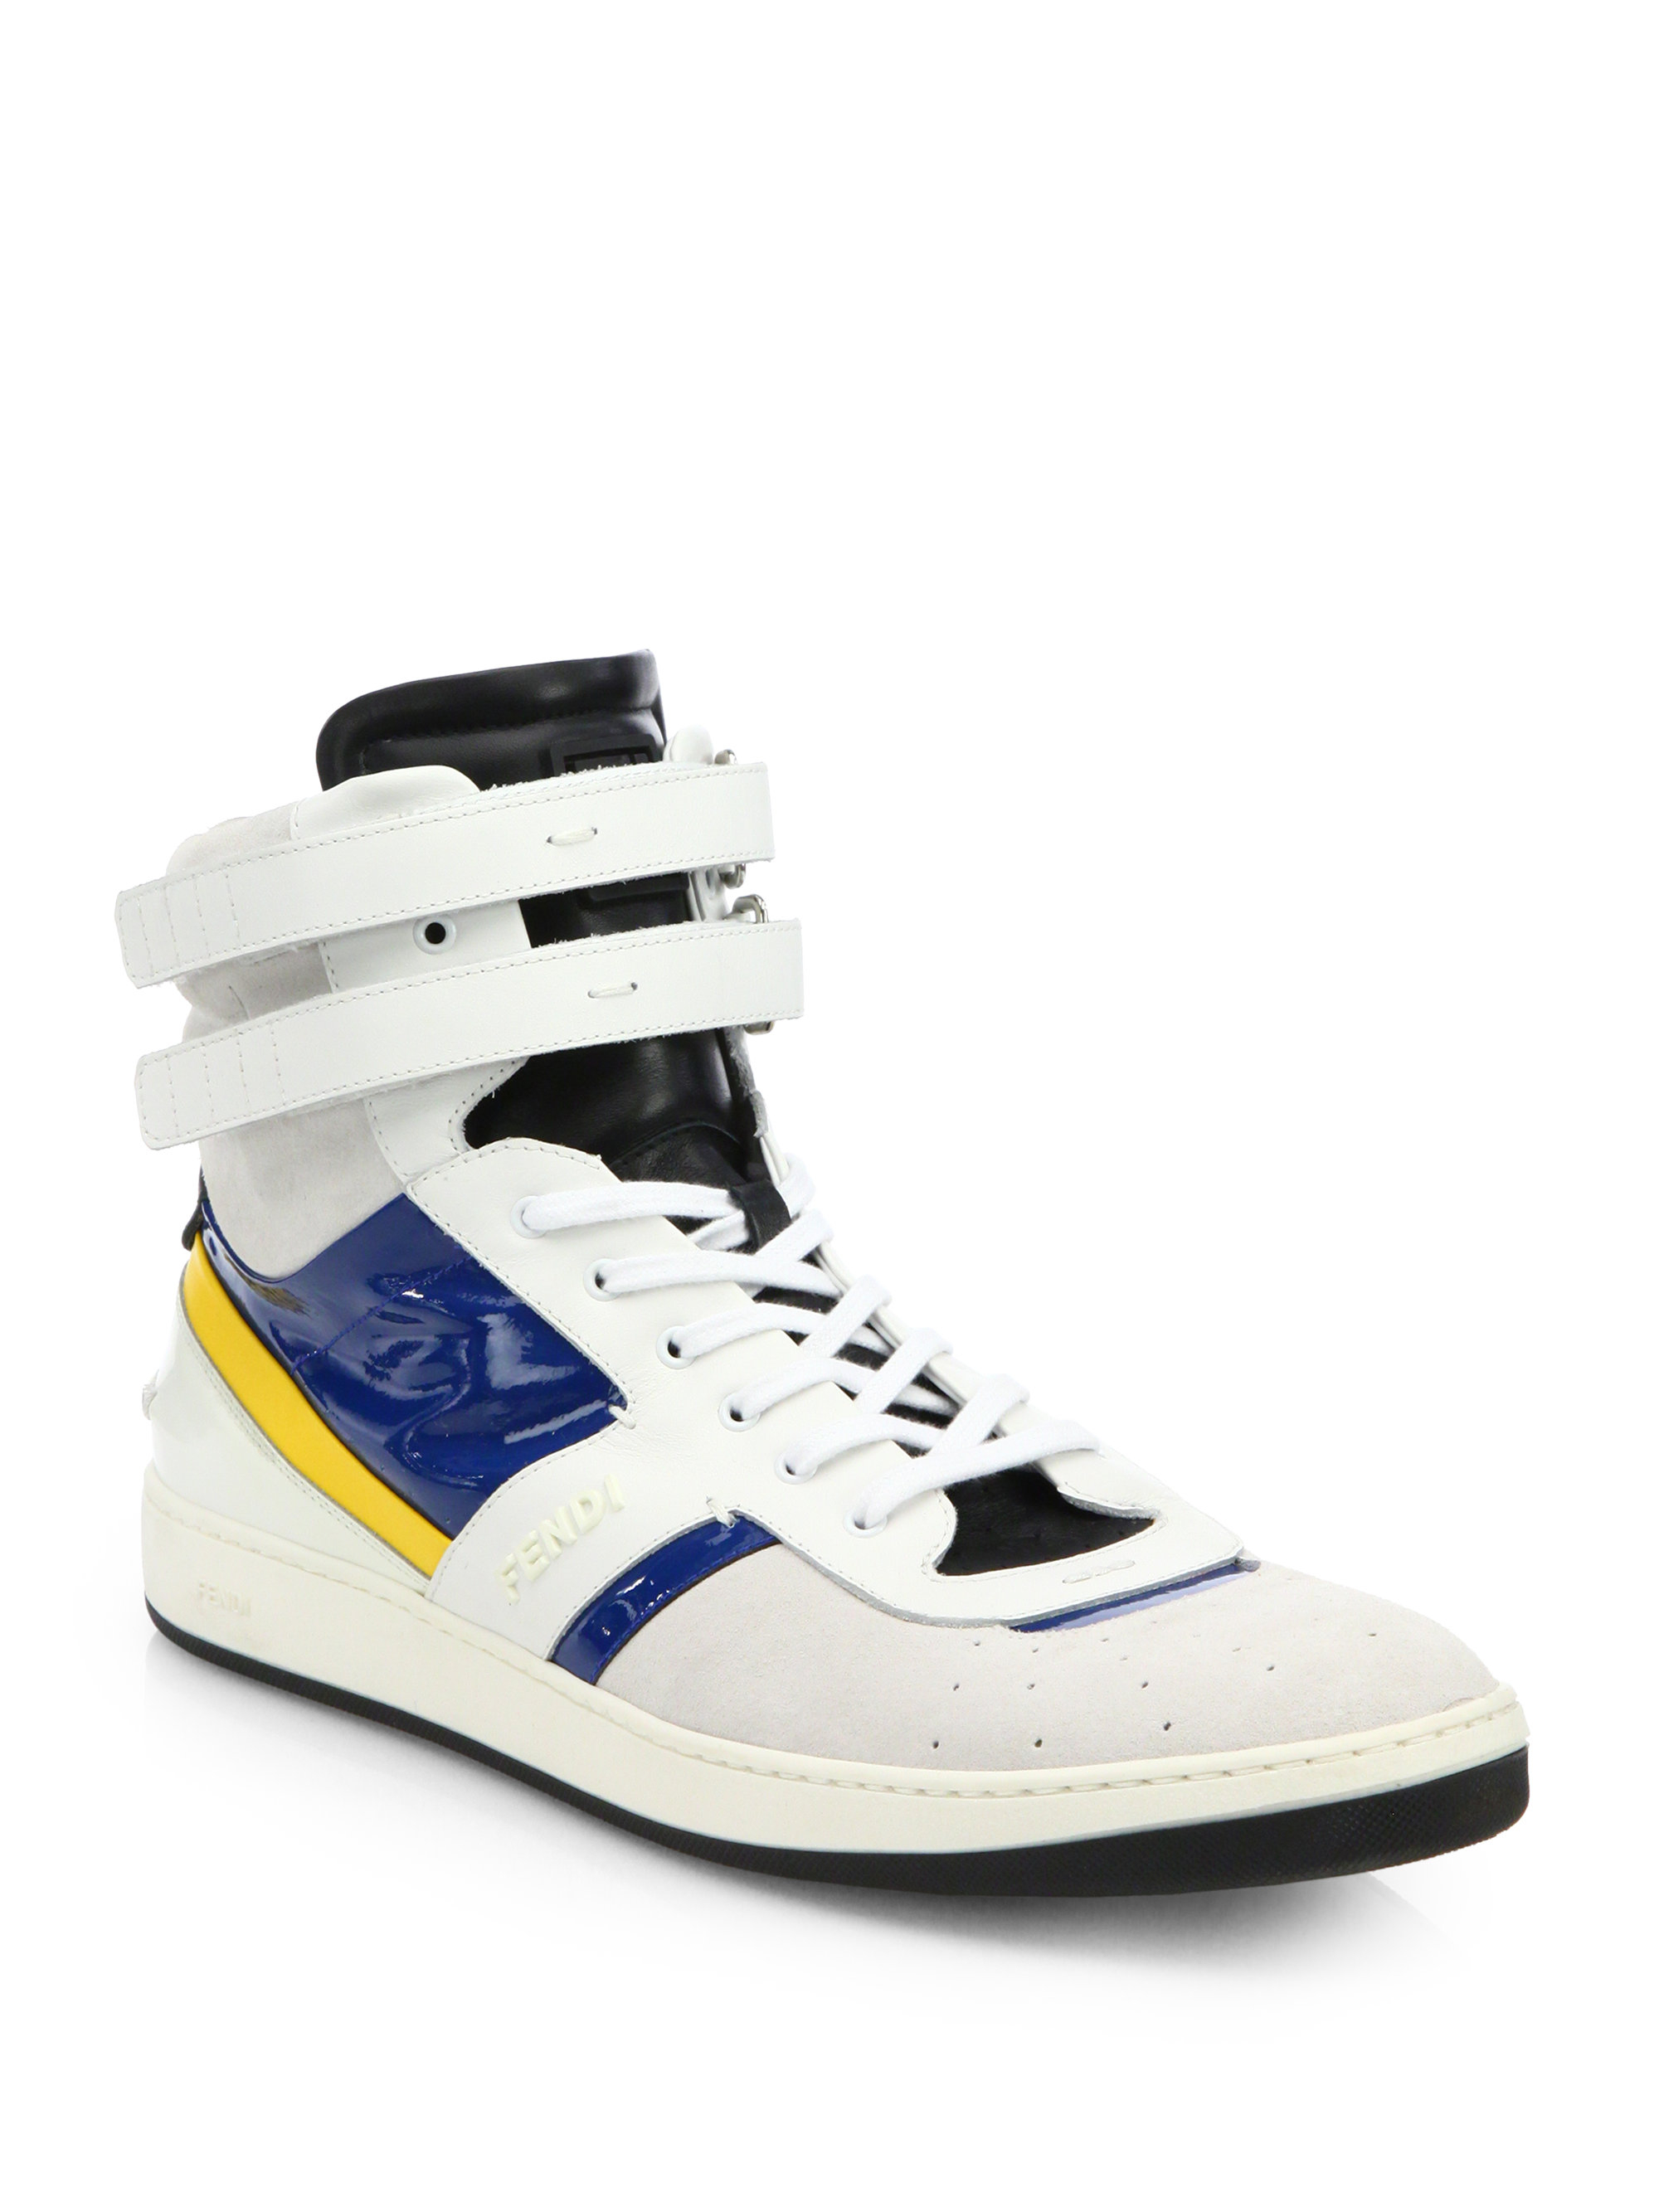 Lyst Fendi Leather High Top Sneakers In Blue For Men